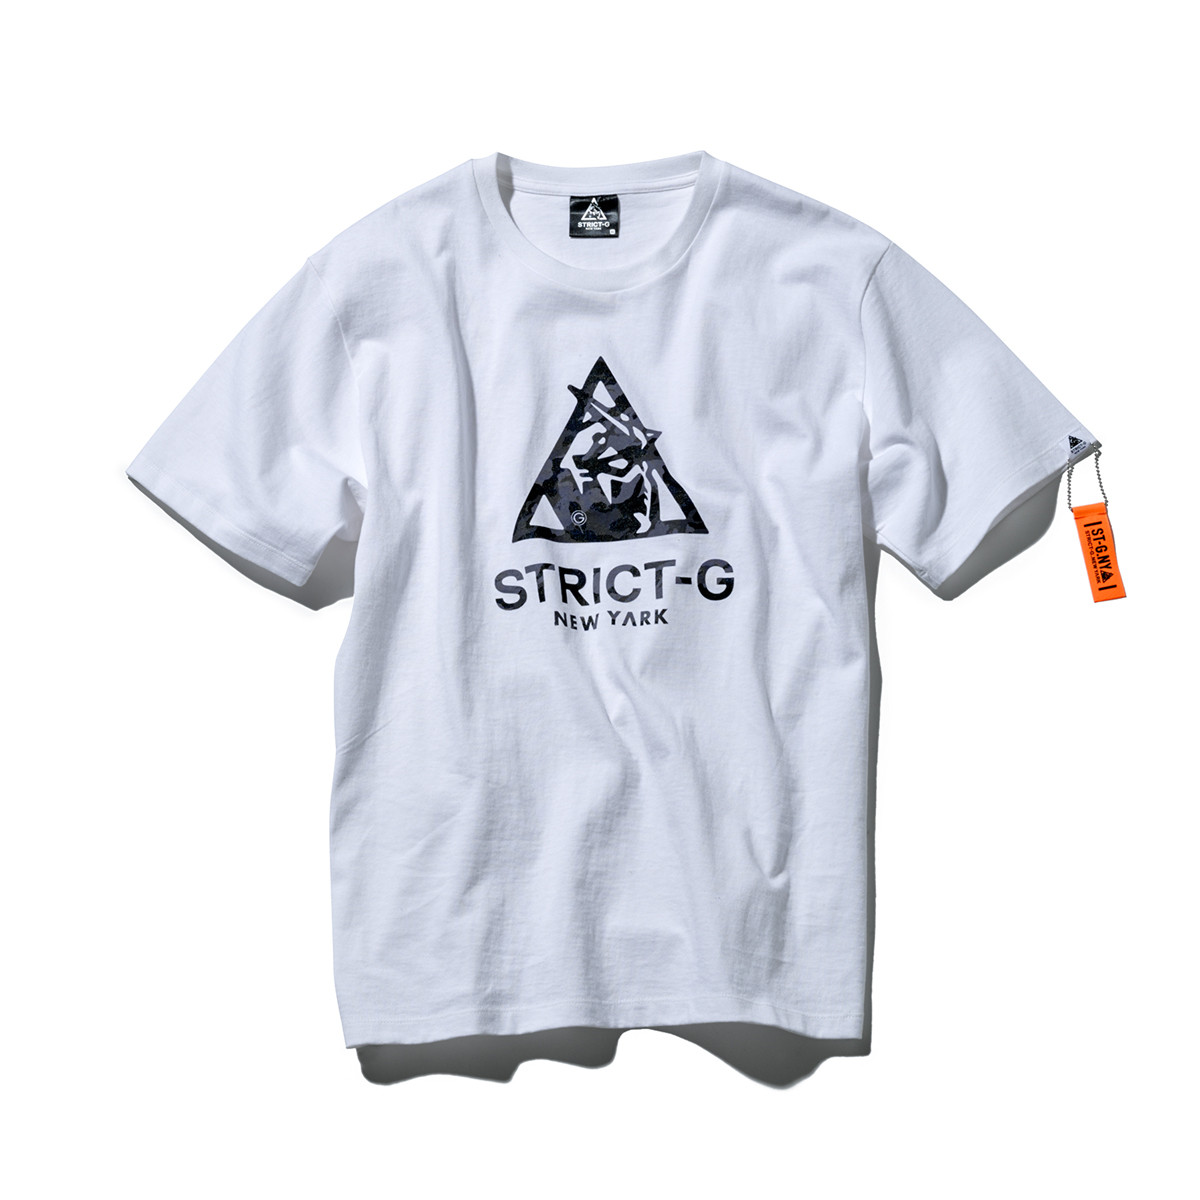 STRICT-G NEW YARK CAMOUFLAGE TRIANGLE LOGO T-SHIRT